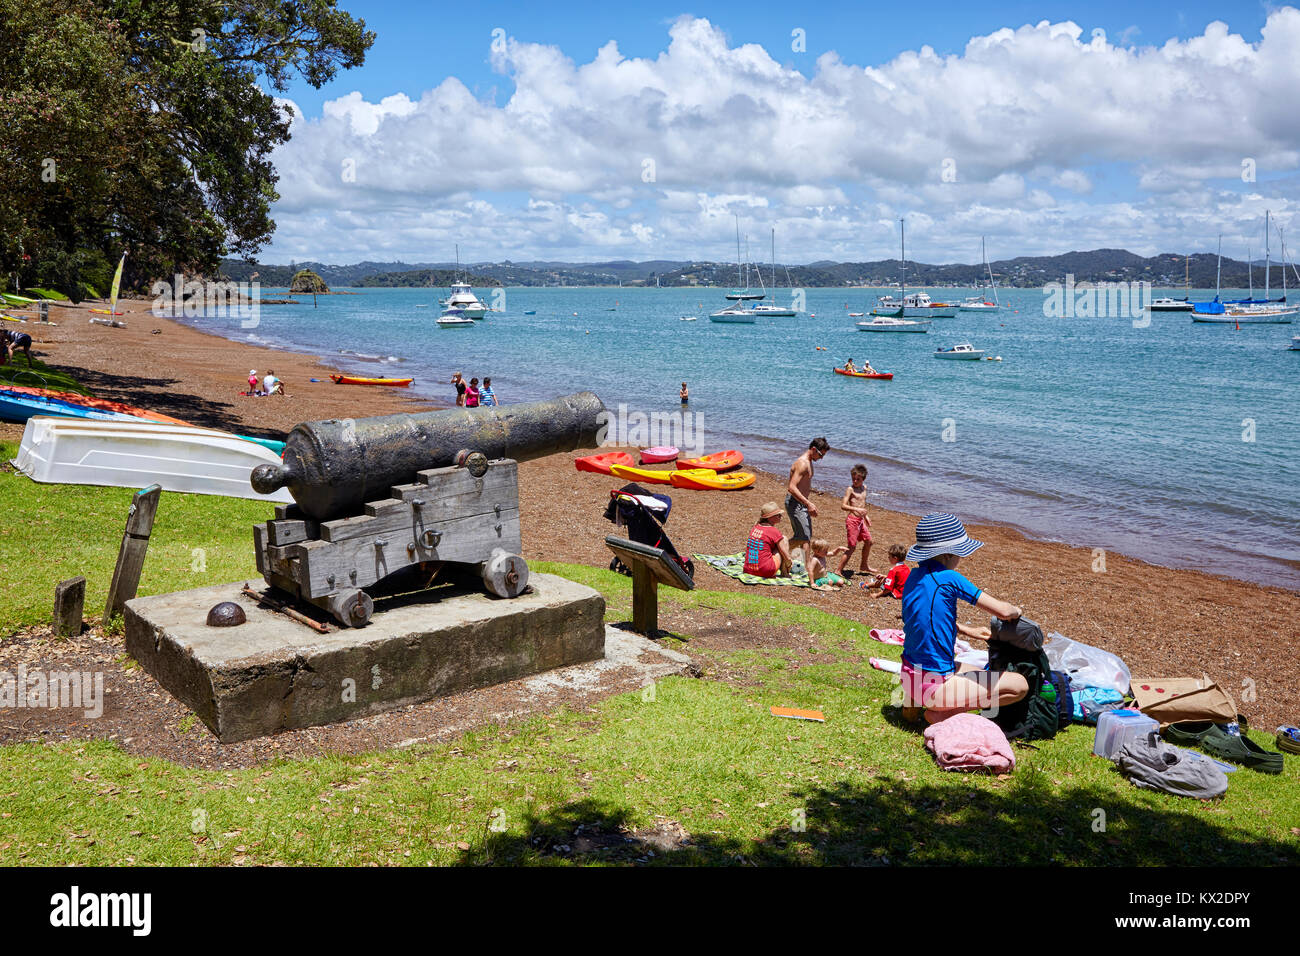 The Strand Beach, Karorareka Bay, the Strand, Russell, North Island, New Zealand - Stock Image